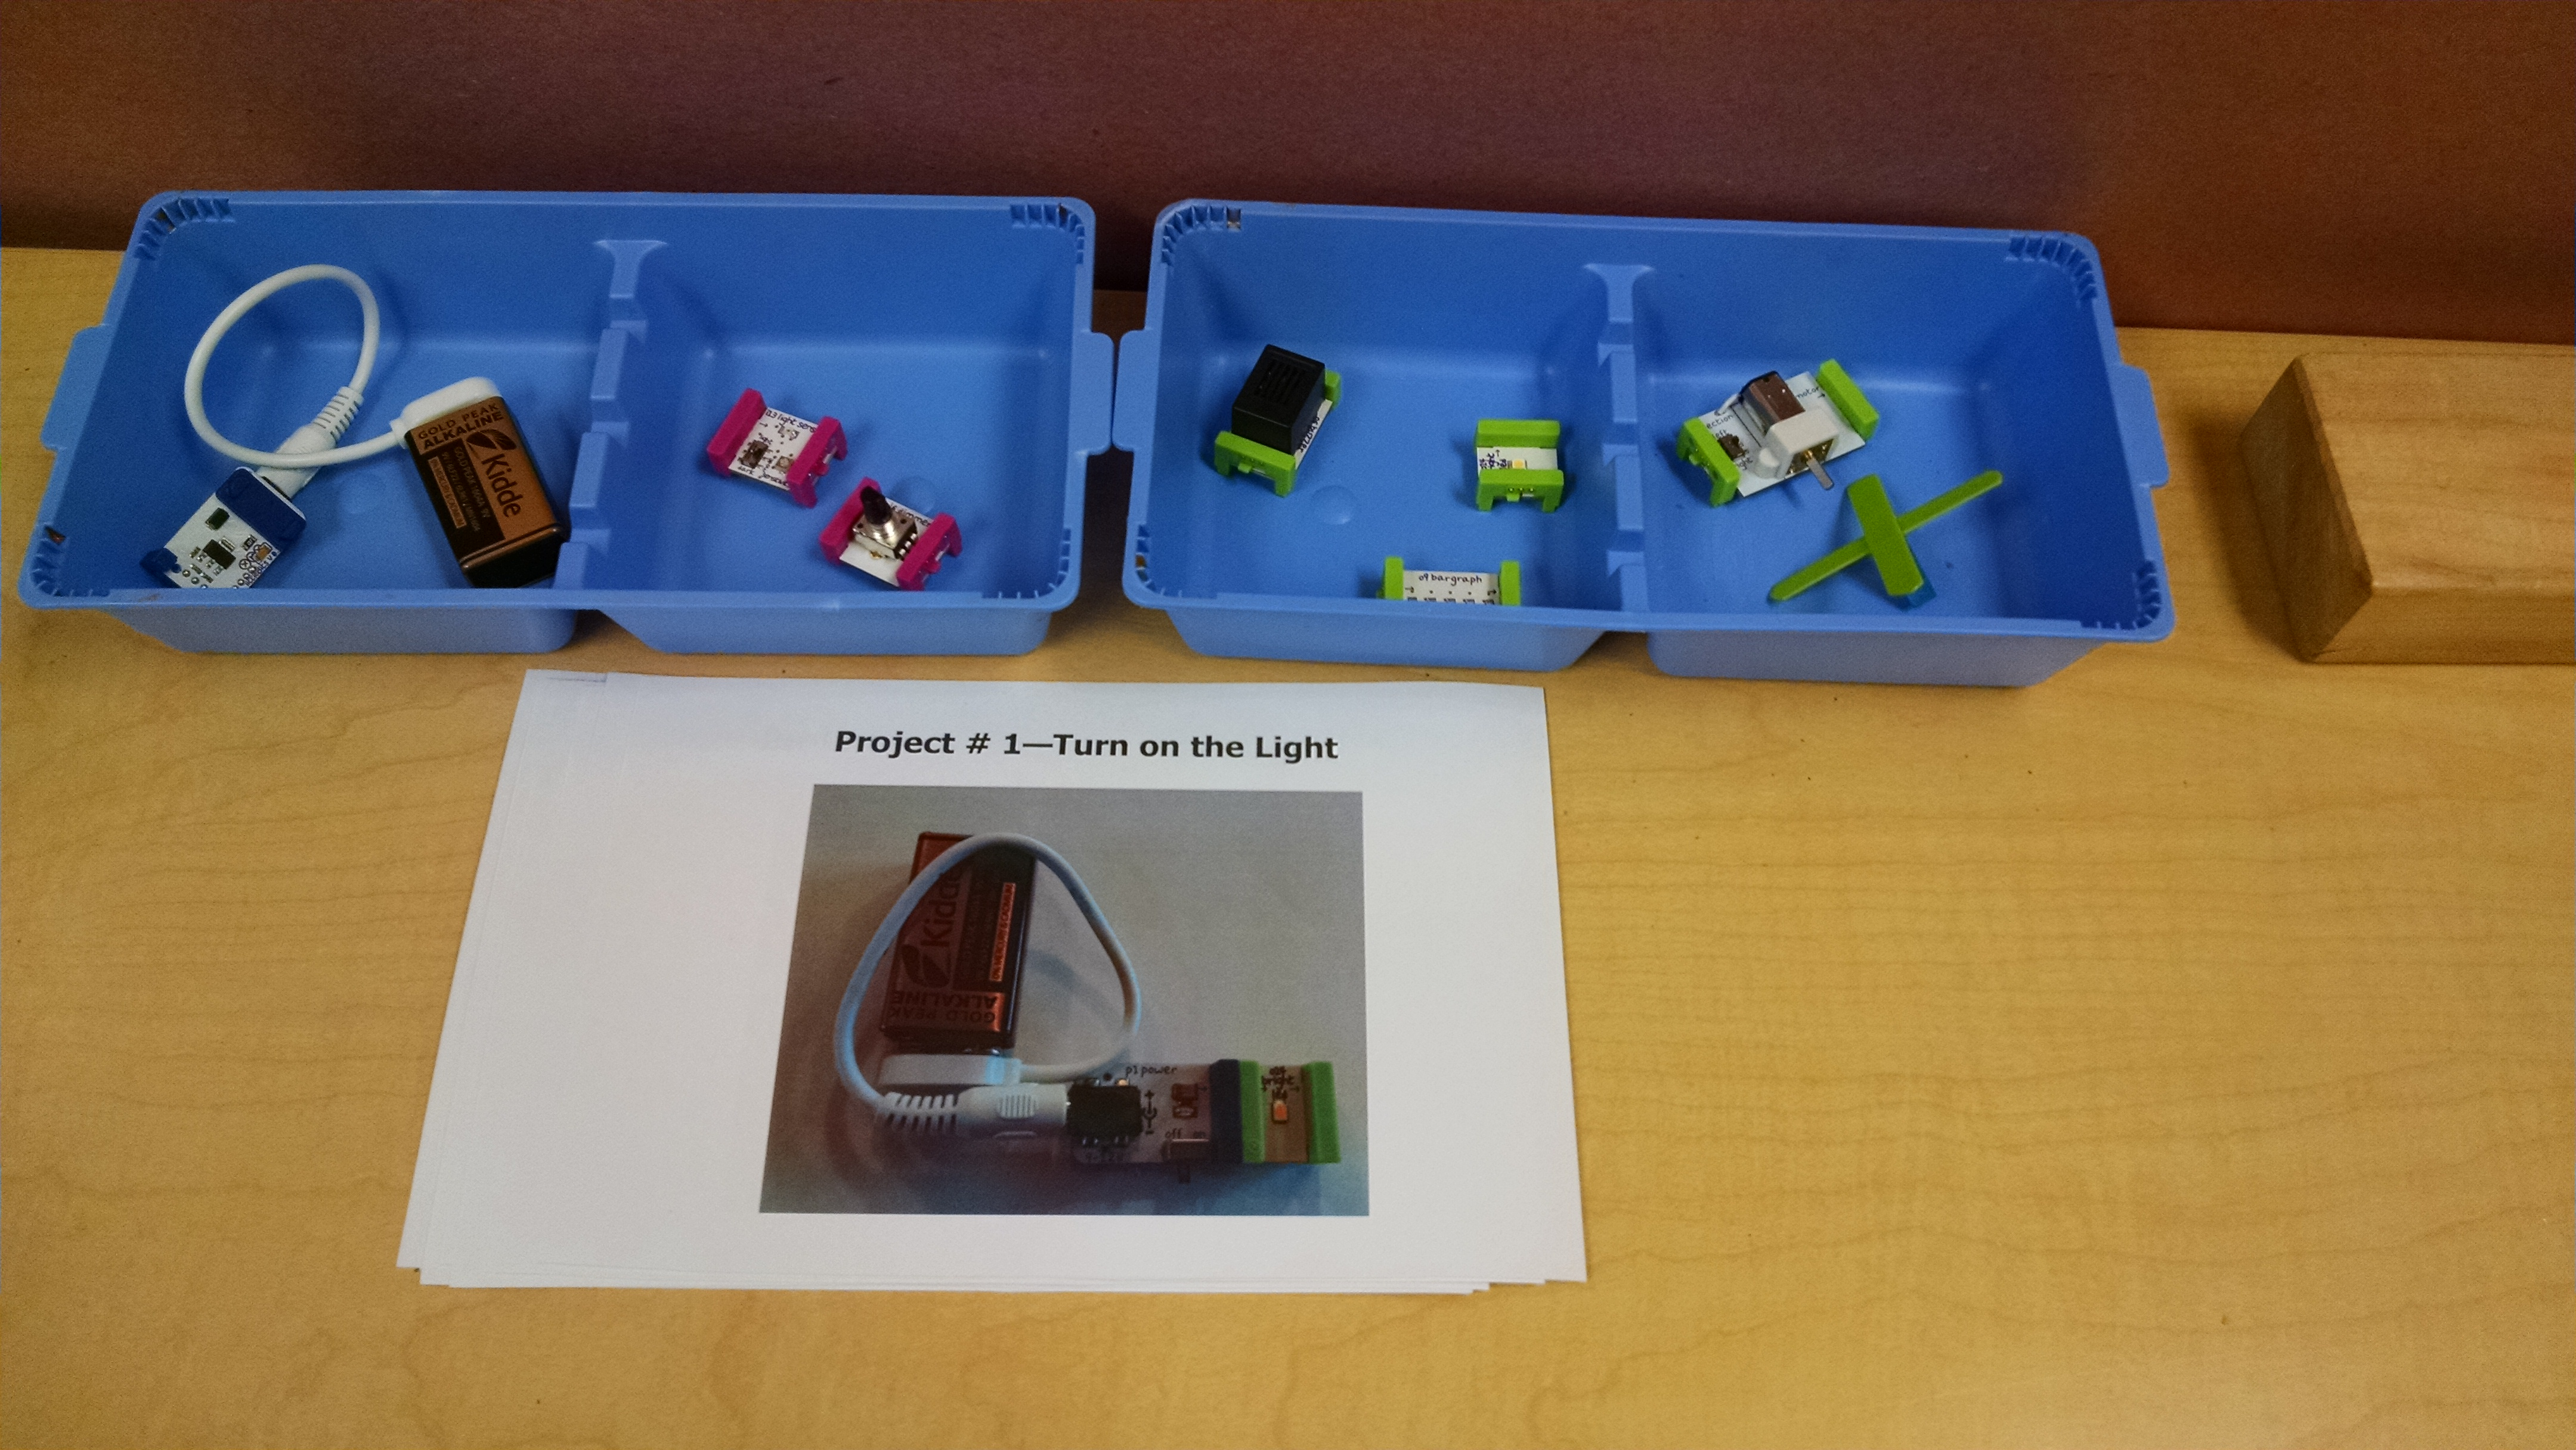 Littlebits Vs Snap Circuits Inventors Of Tomorrow Home Products Science Kits Green Lightsensor Img 20161105 092317555